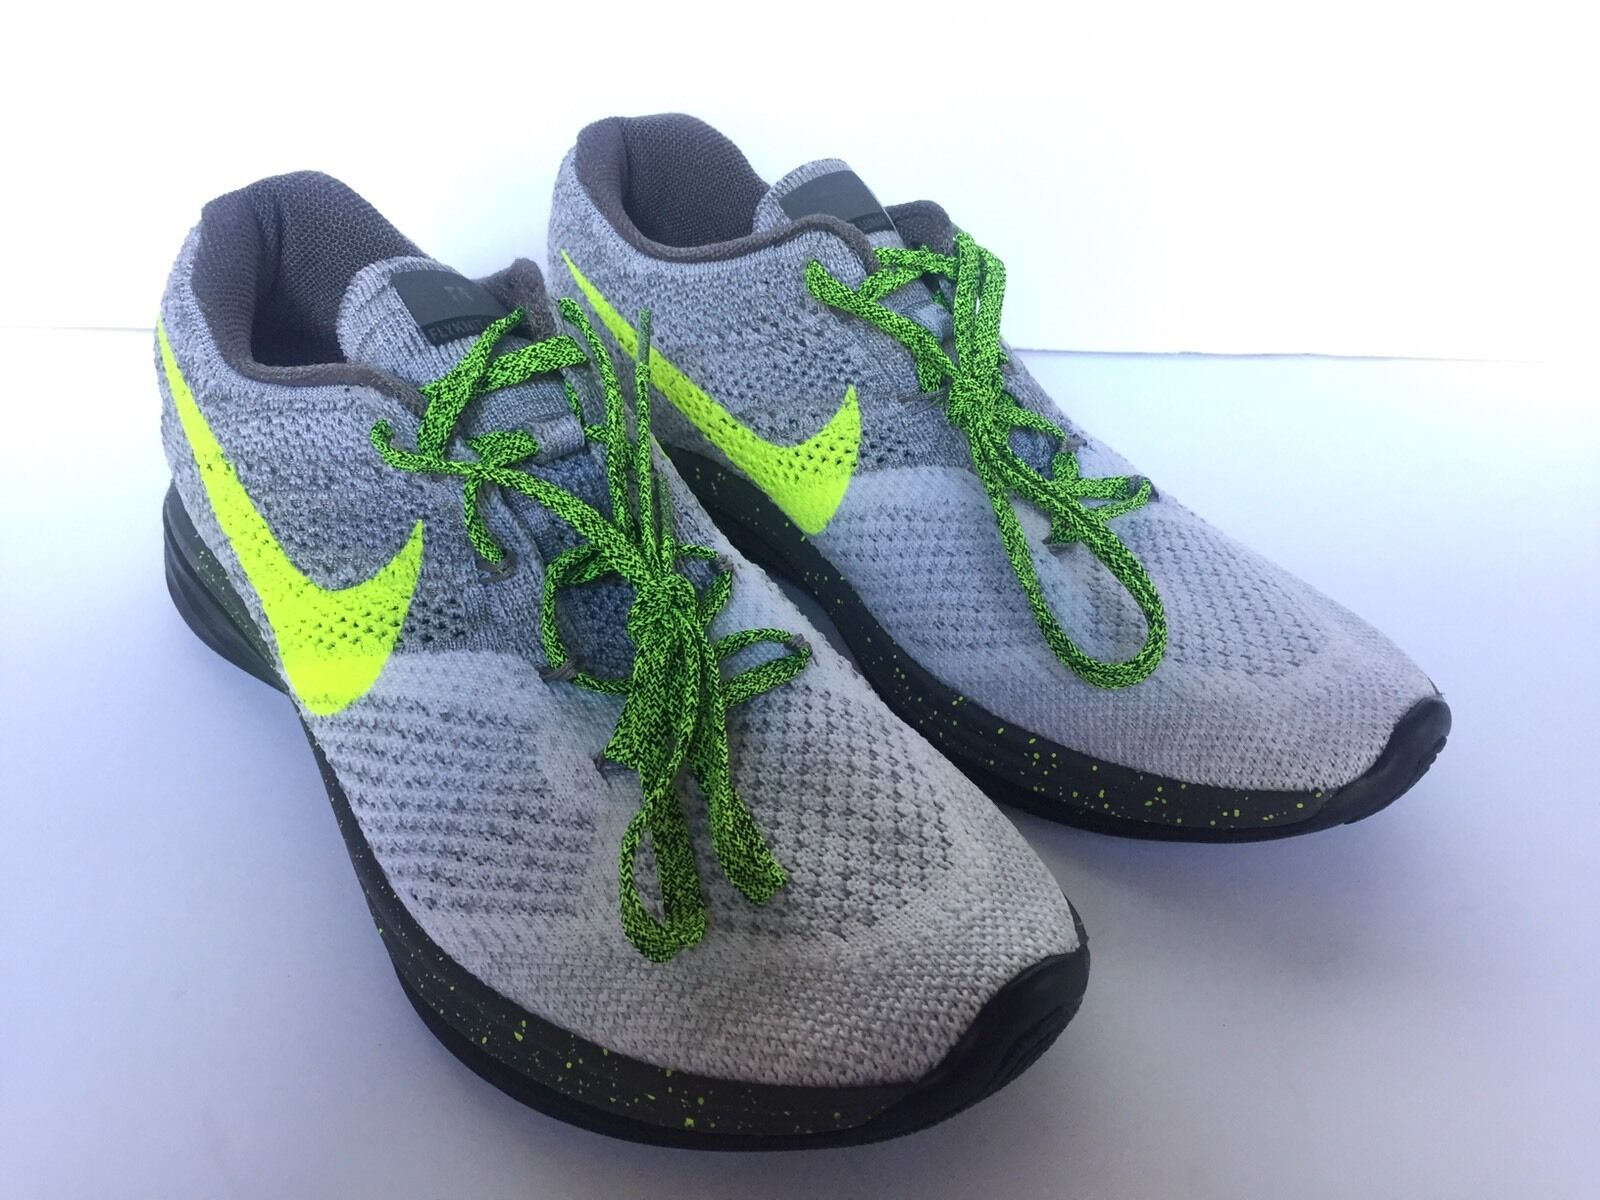 the latest 08a0d f2d60 ... 2 fonctionnement clearance trainers 620658 101 chaussures clearance  fonctionnement 794f43 9e27a 81c99  where can i buy nike flyknit lunar neon  id gris ...